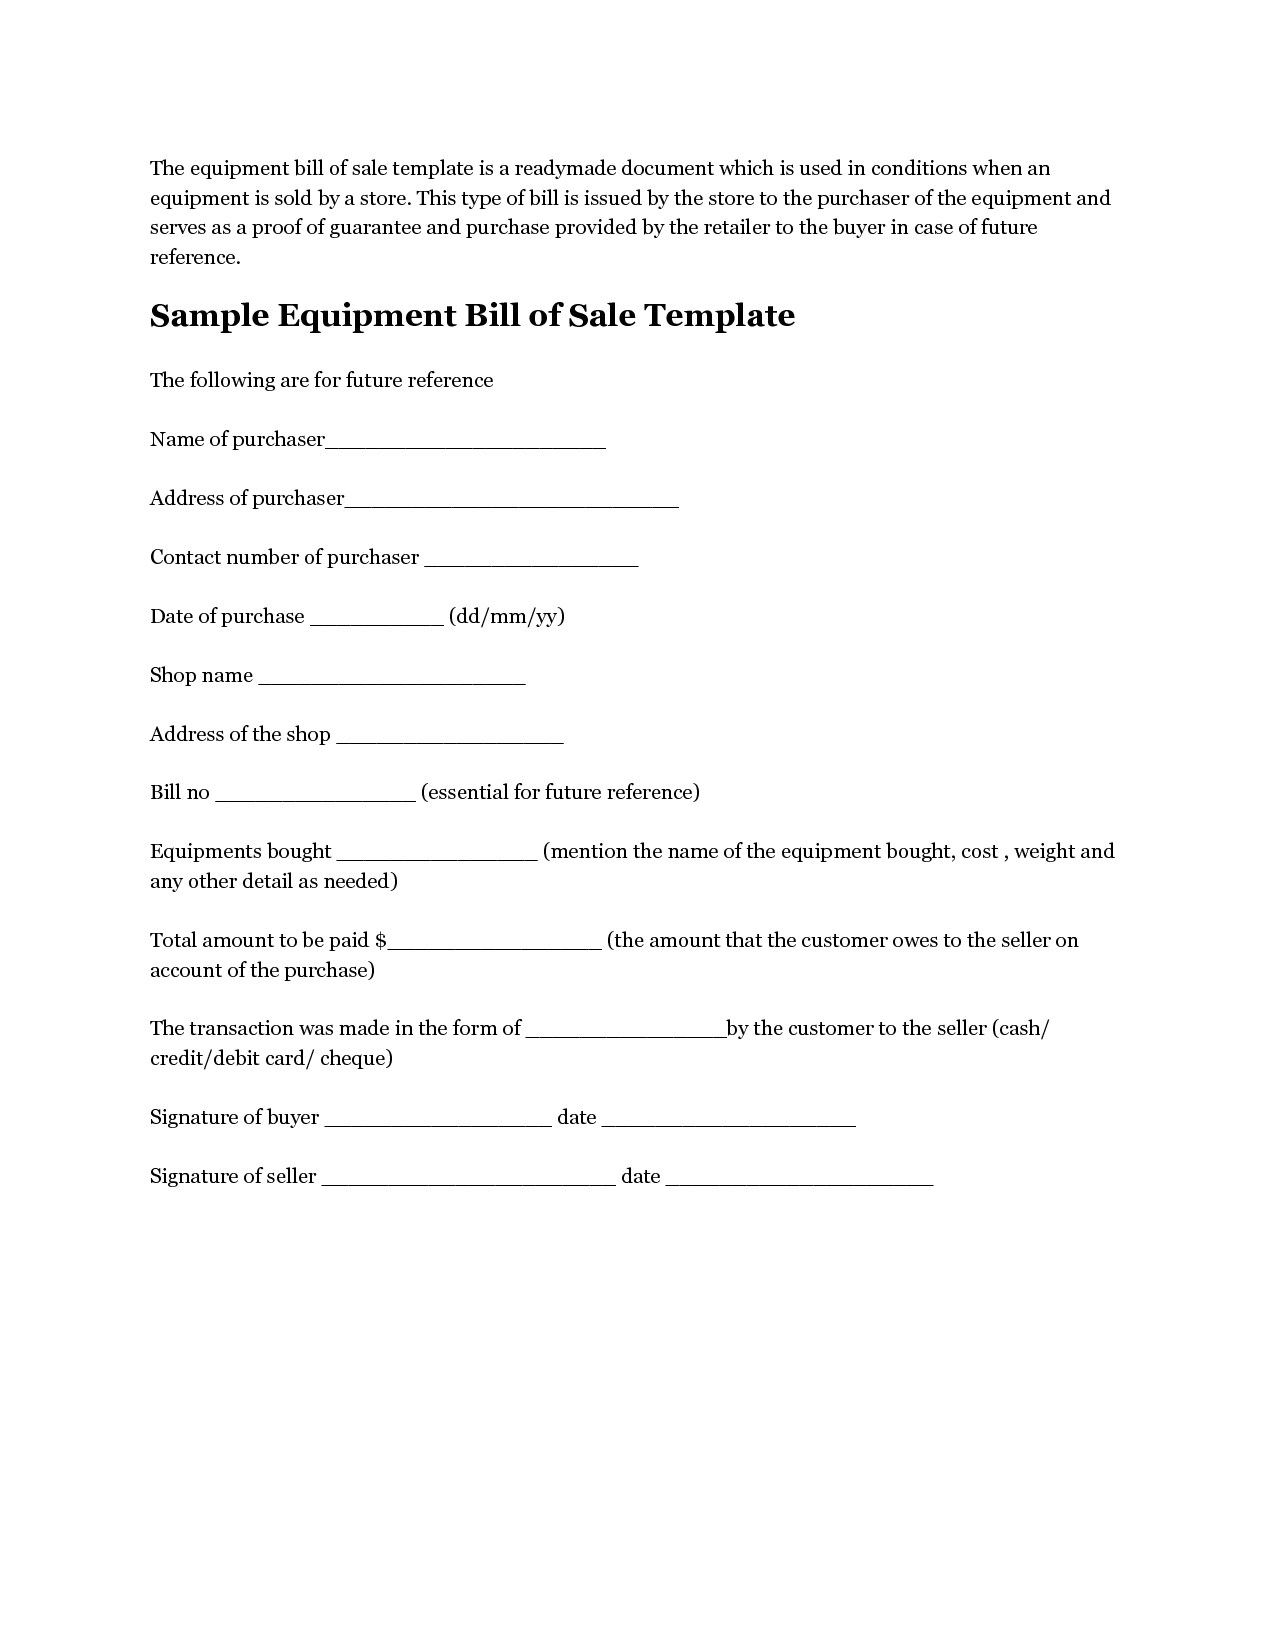 Personal Loan Repayment Letter Template - Printable Sample Equipment Bill Sale Template form